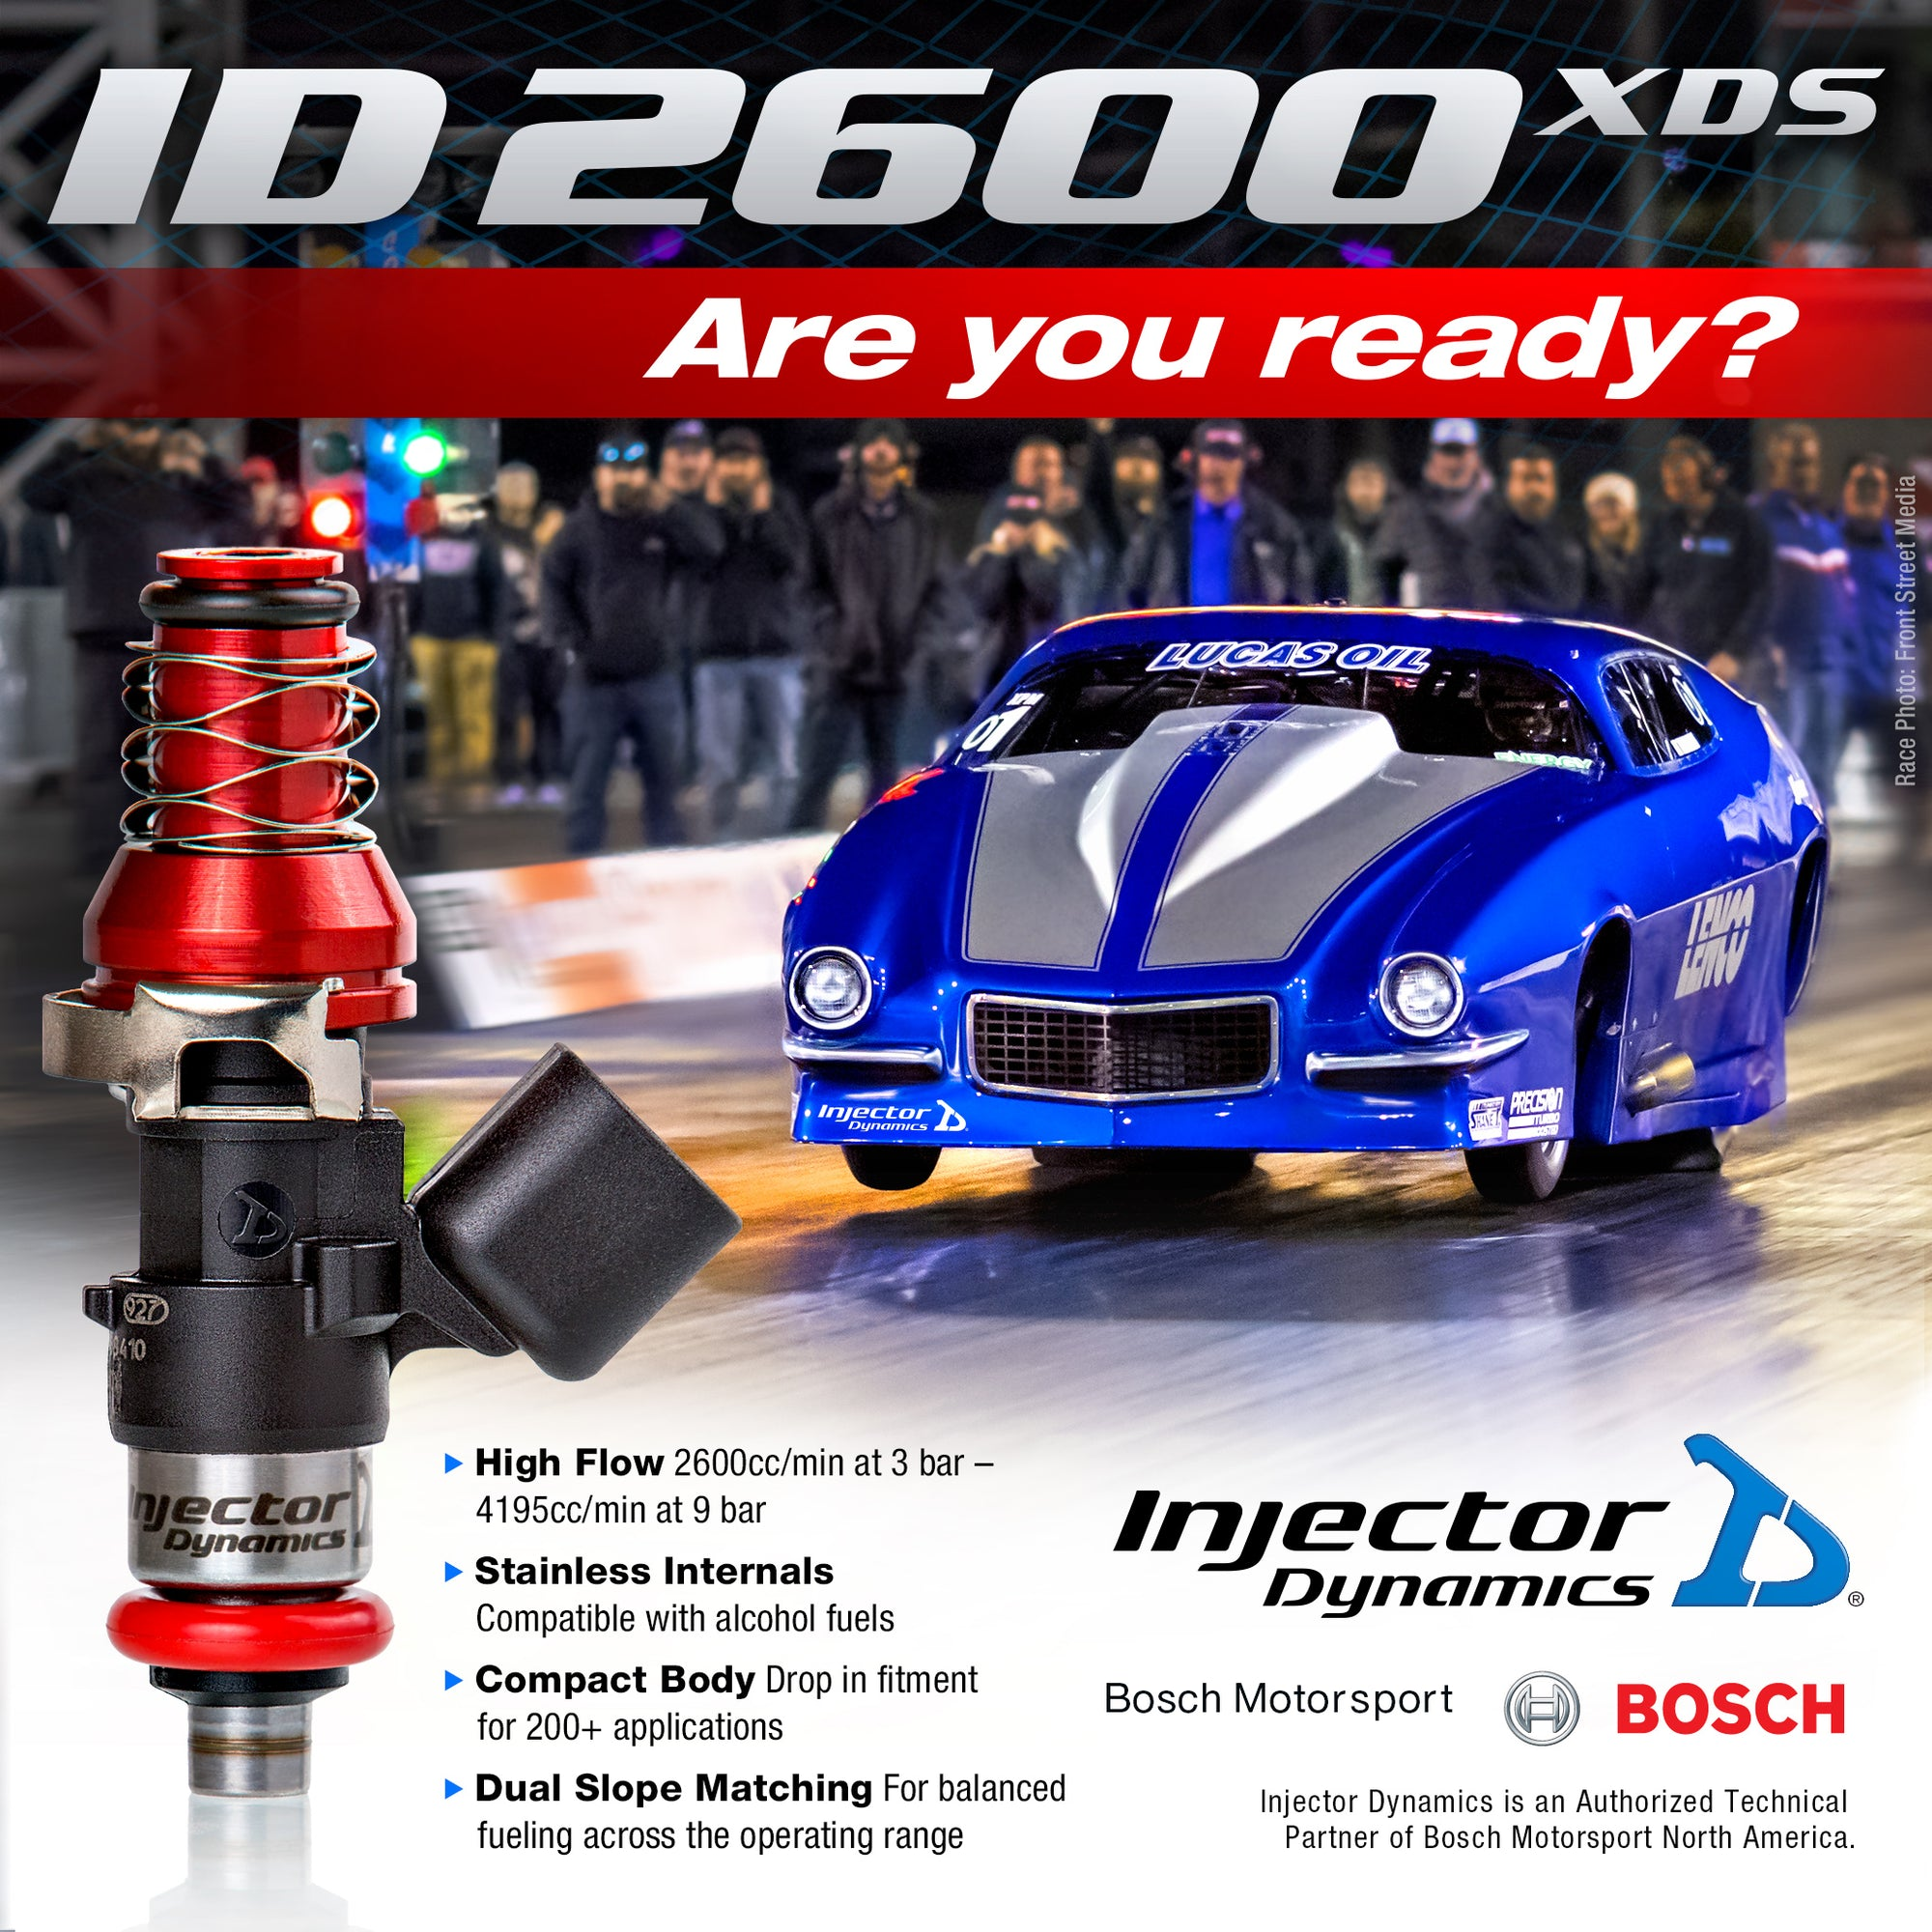 ID2600-XDS Injectors for R35 GT-R